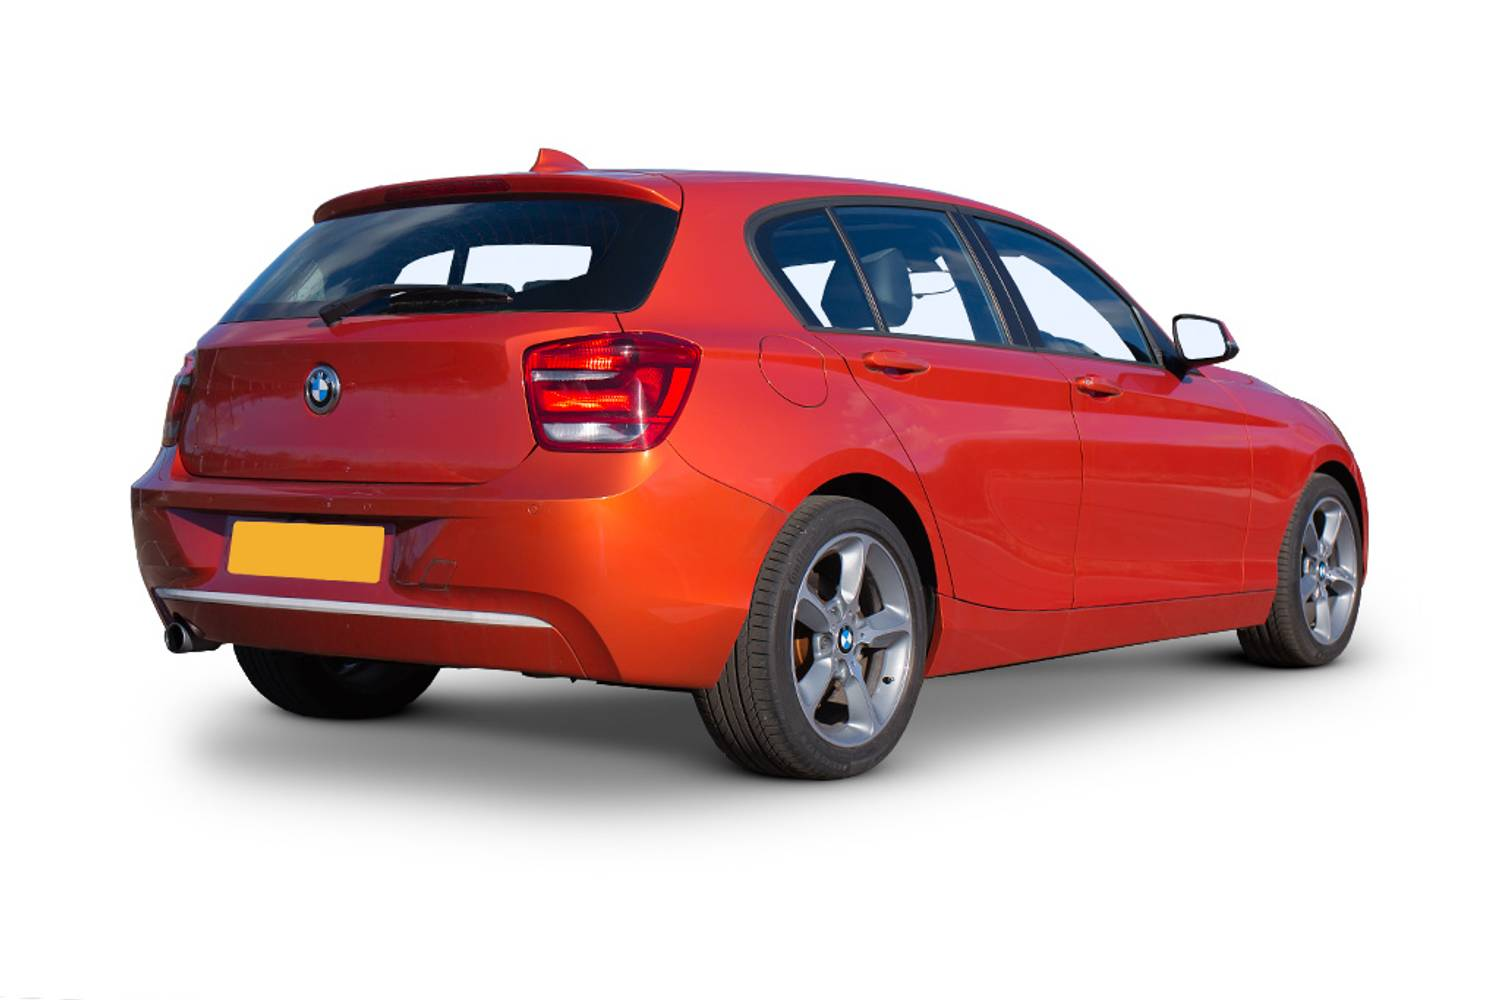 BMW 1 Series Hatchback 5dr Rear Three Quarter